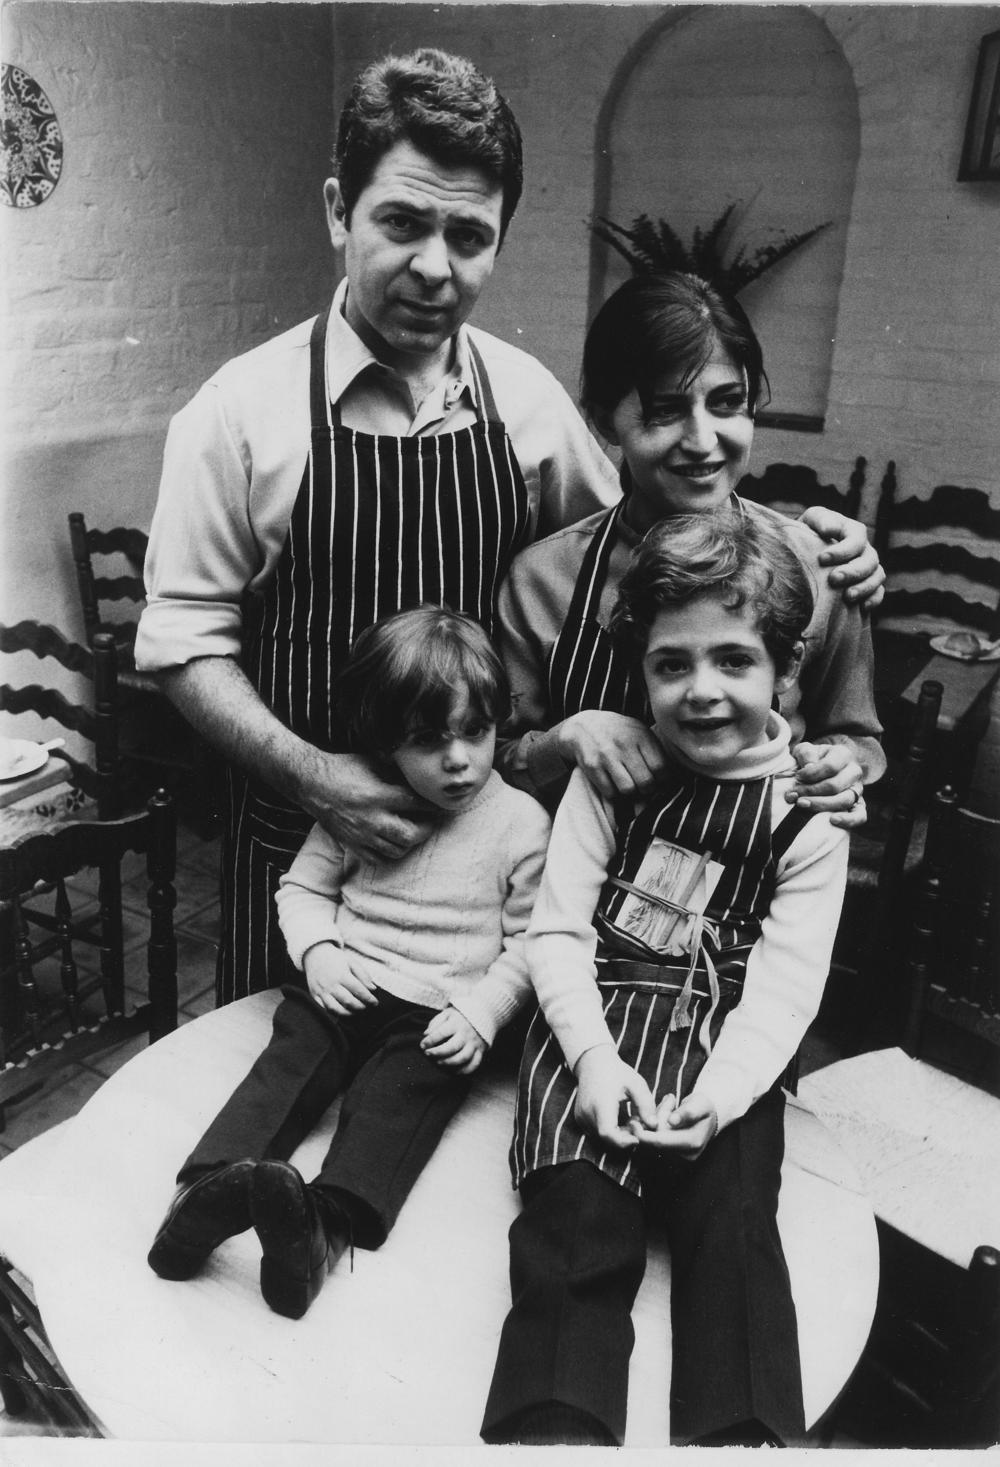 Lorenzo & Mara Berni, founders of the legendary San Lorenzo restaurant in Knightsbridge, with their two sons Ghigo and Paolo, circa 1968